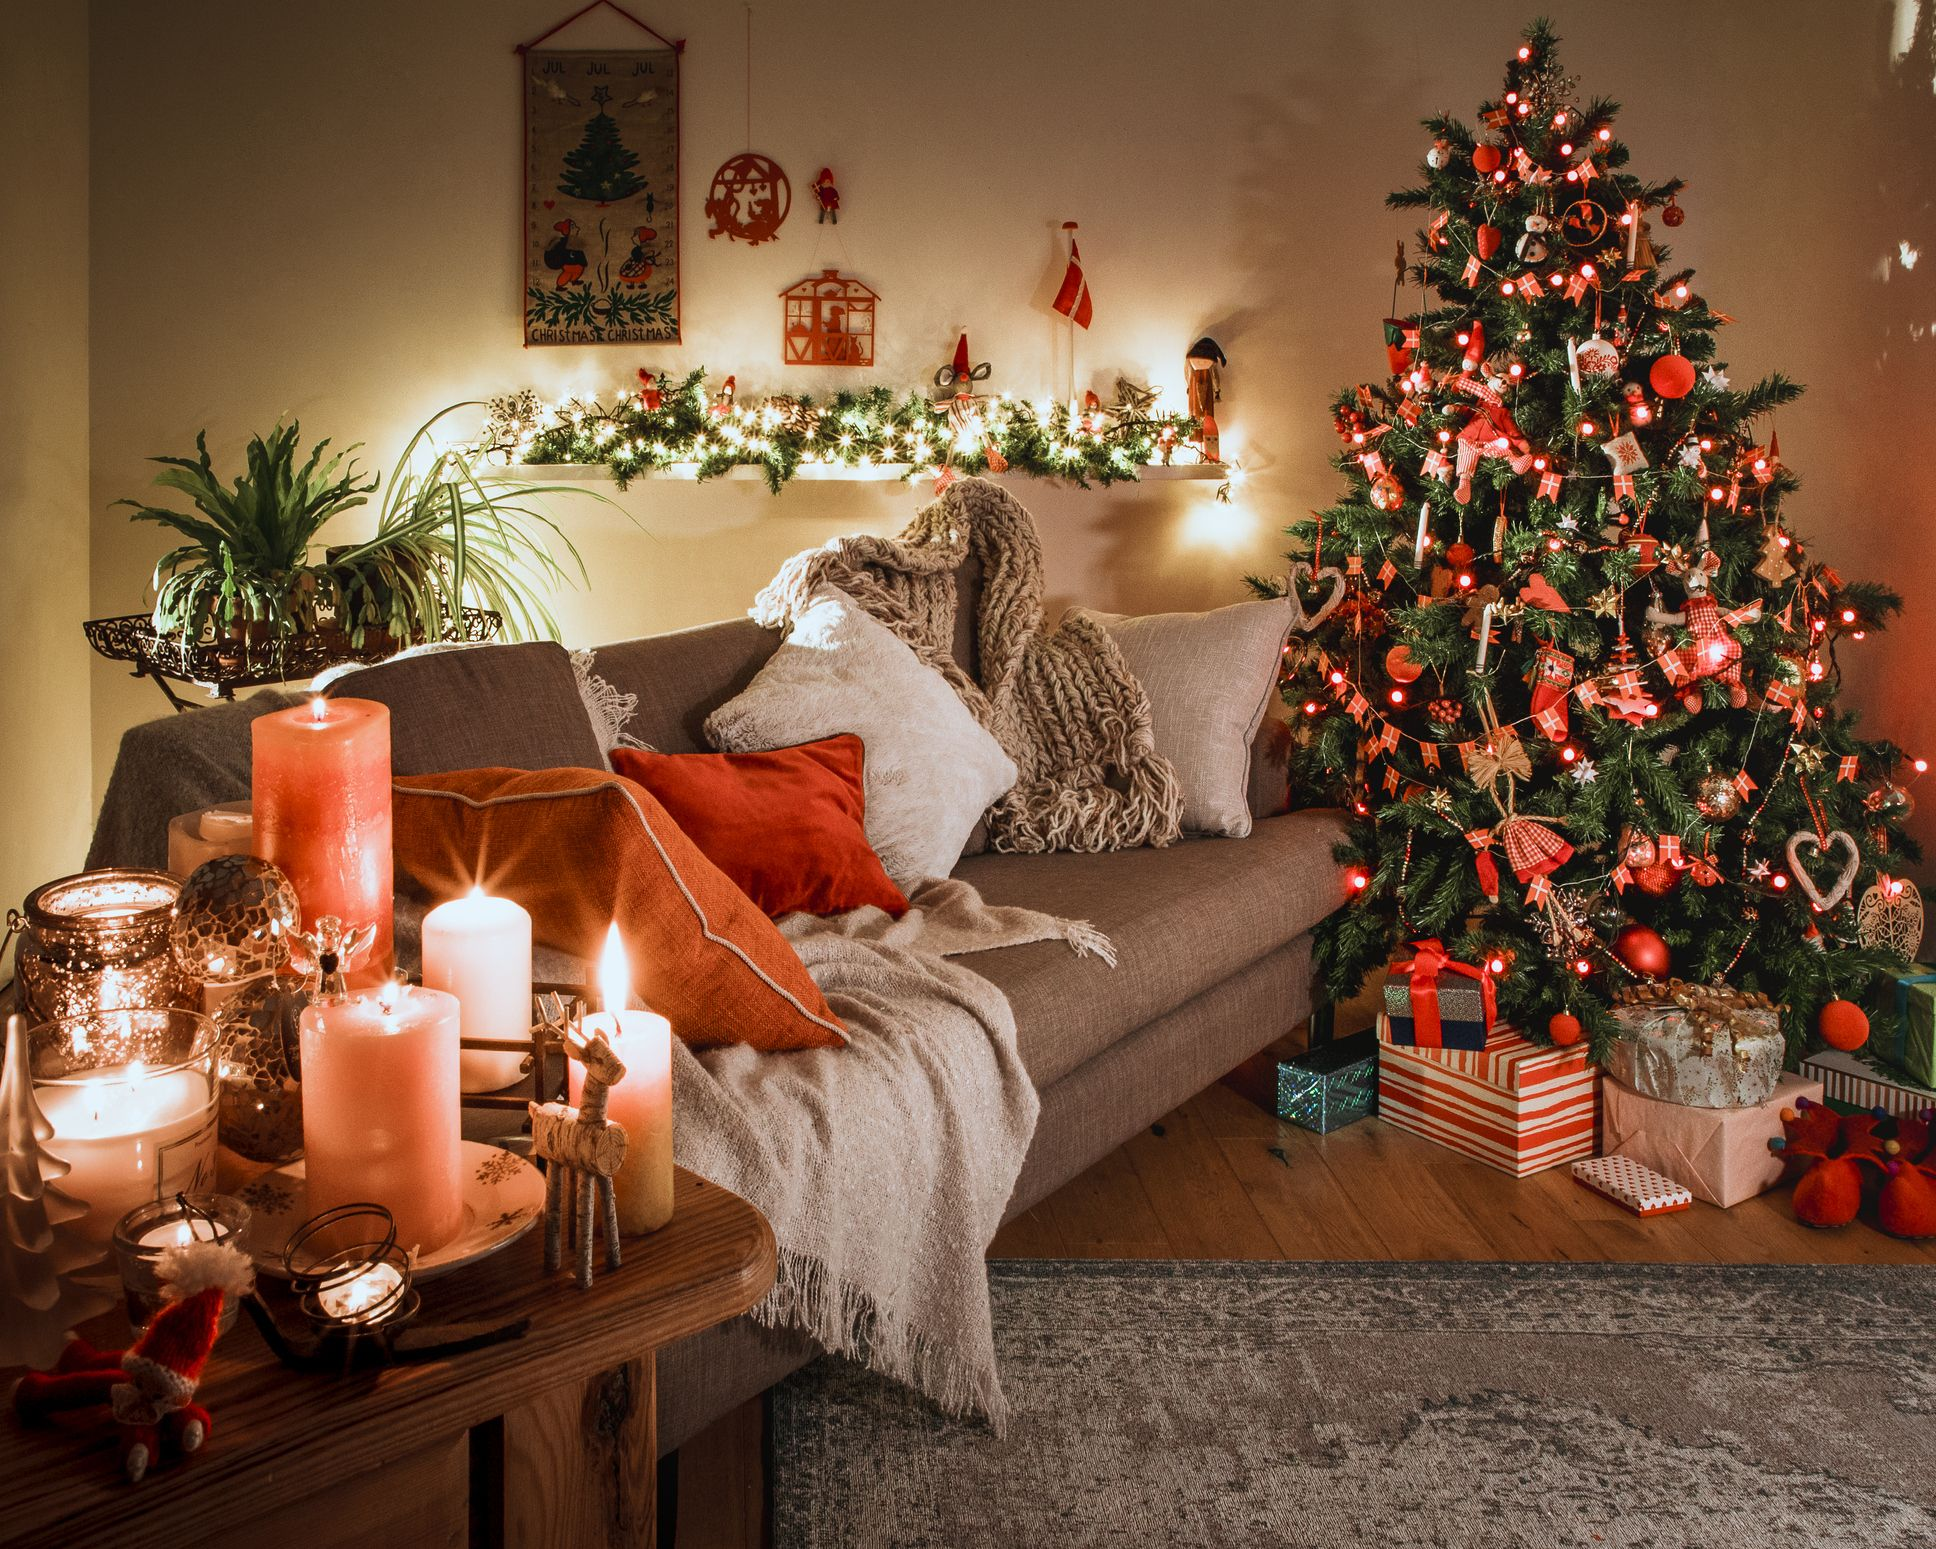 5 Impressive Tips for Selecting Artificial Christmas Trees